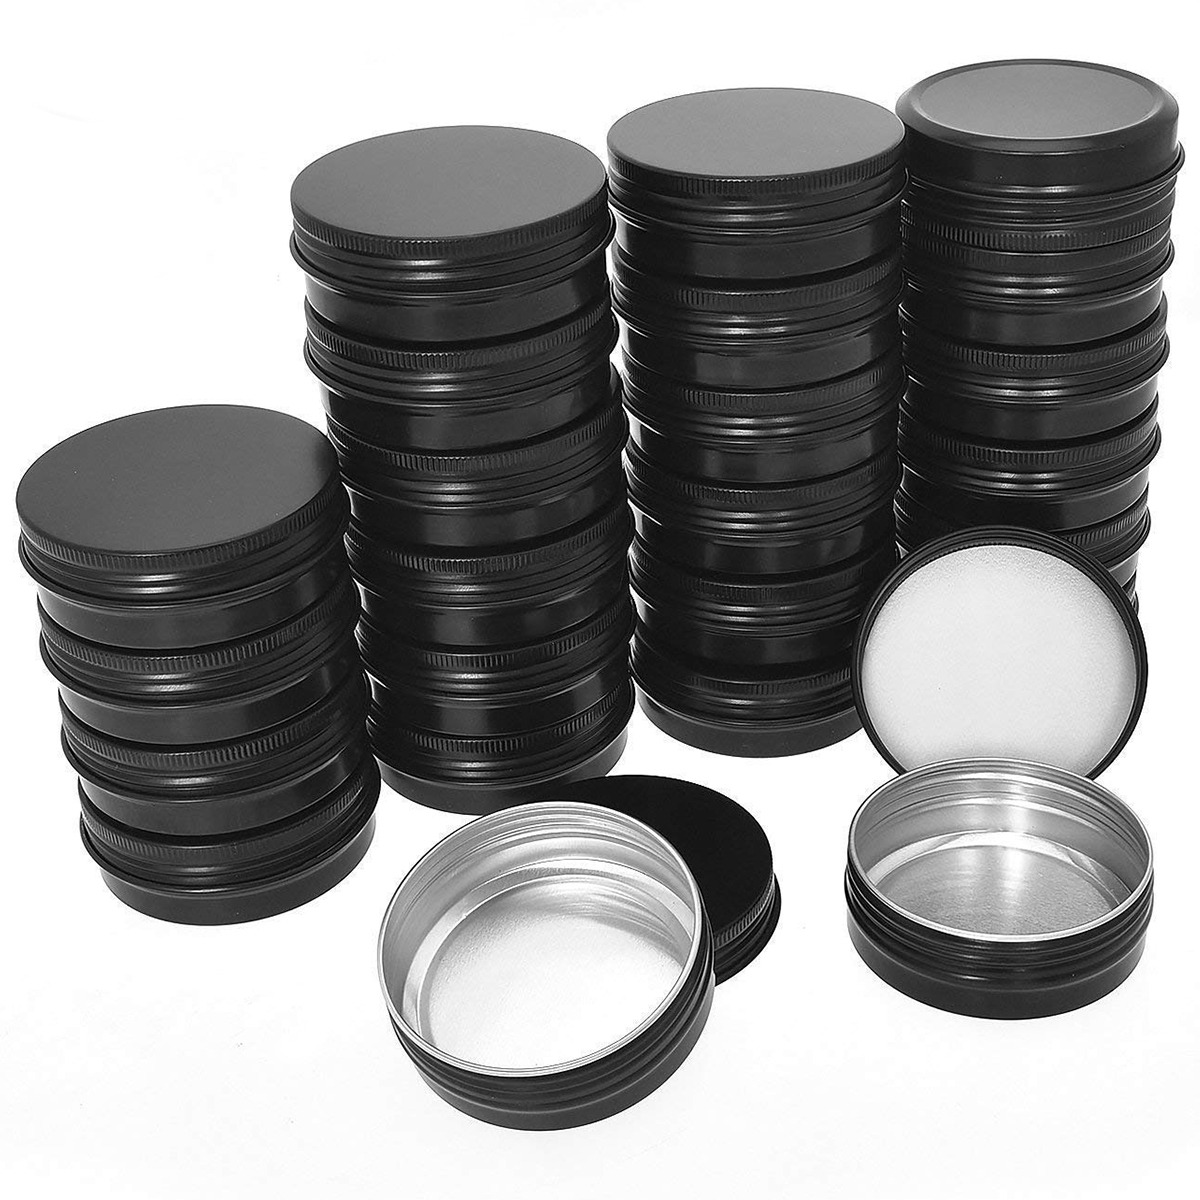 Aluminum Tin Cans - 40 Pack 1Oz / 30G Round Metal Tin Container Screw Top Cans Cosmetic Sample Containers Candle Travel TinsAluminum Tin Cans - 40 Pack 1Oz / 30G Round Metal Tin Container Screw Top Cans Cosmetic Sample Containers Candle Travel Tins